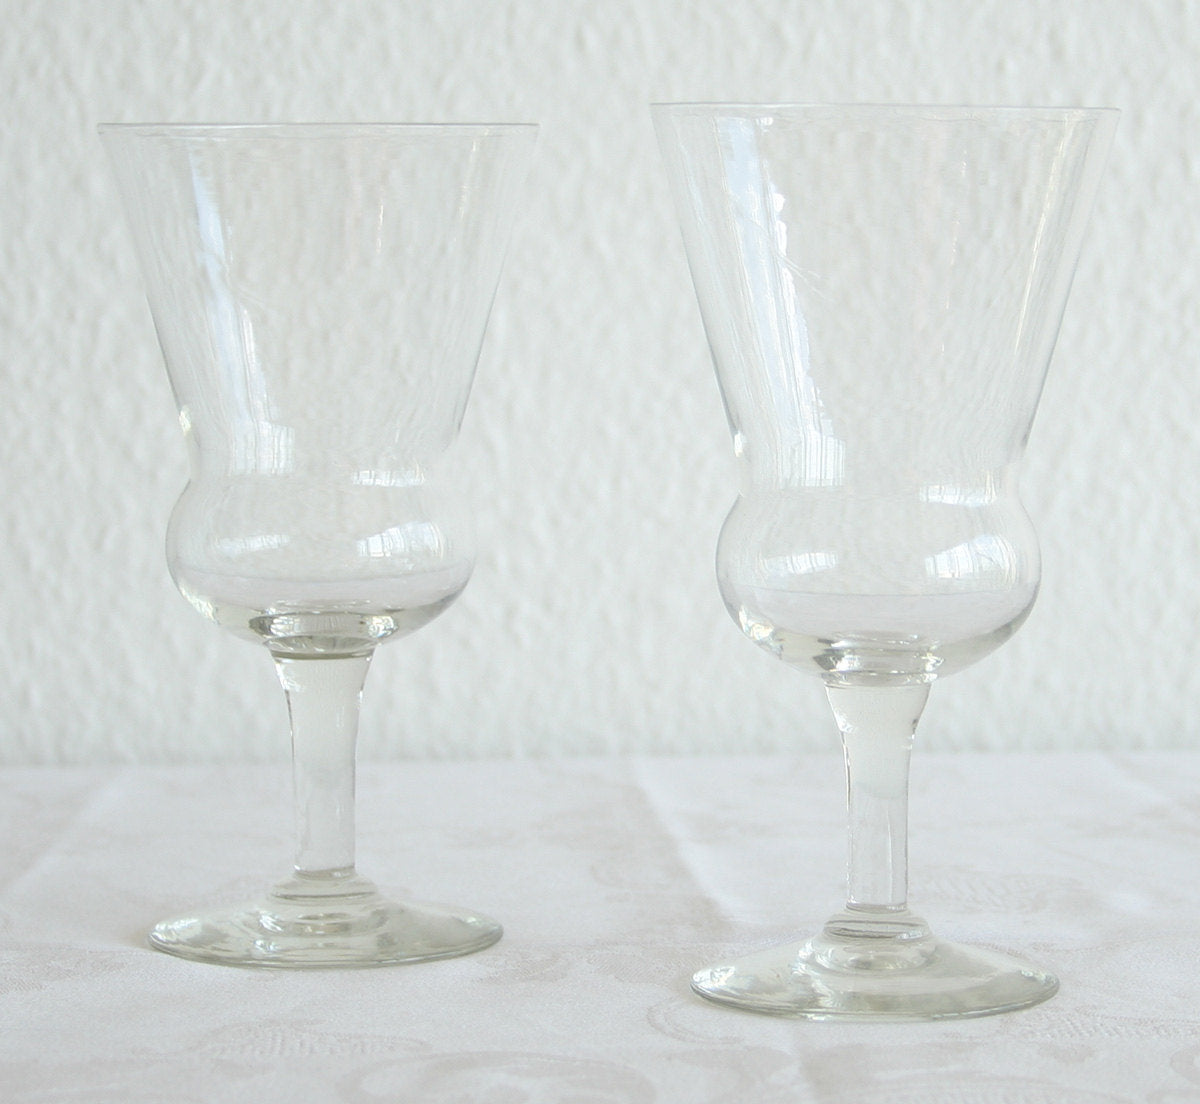 Holmegaard Antique DEWAR Whisky Glass - Mollaris.com